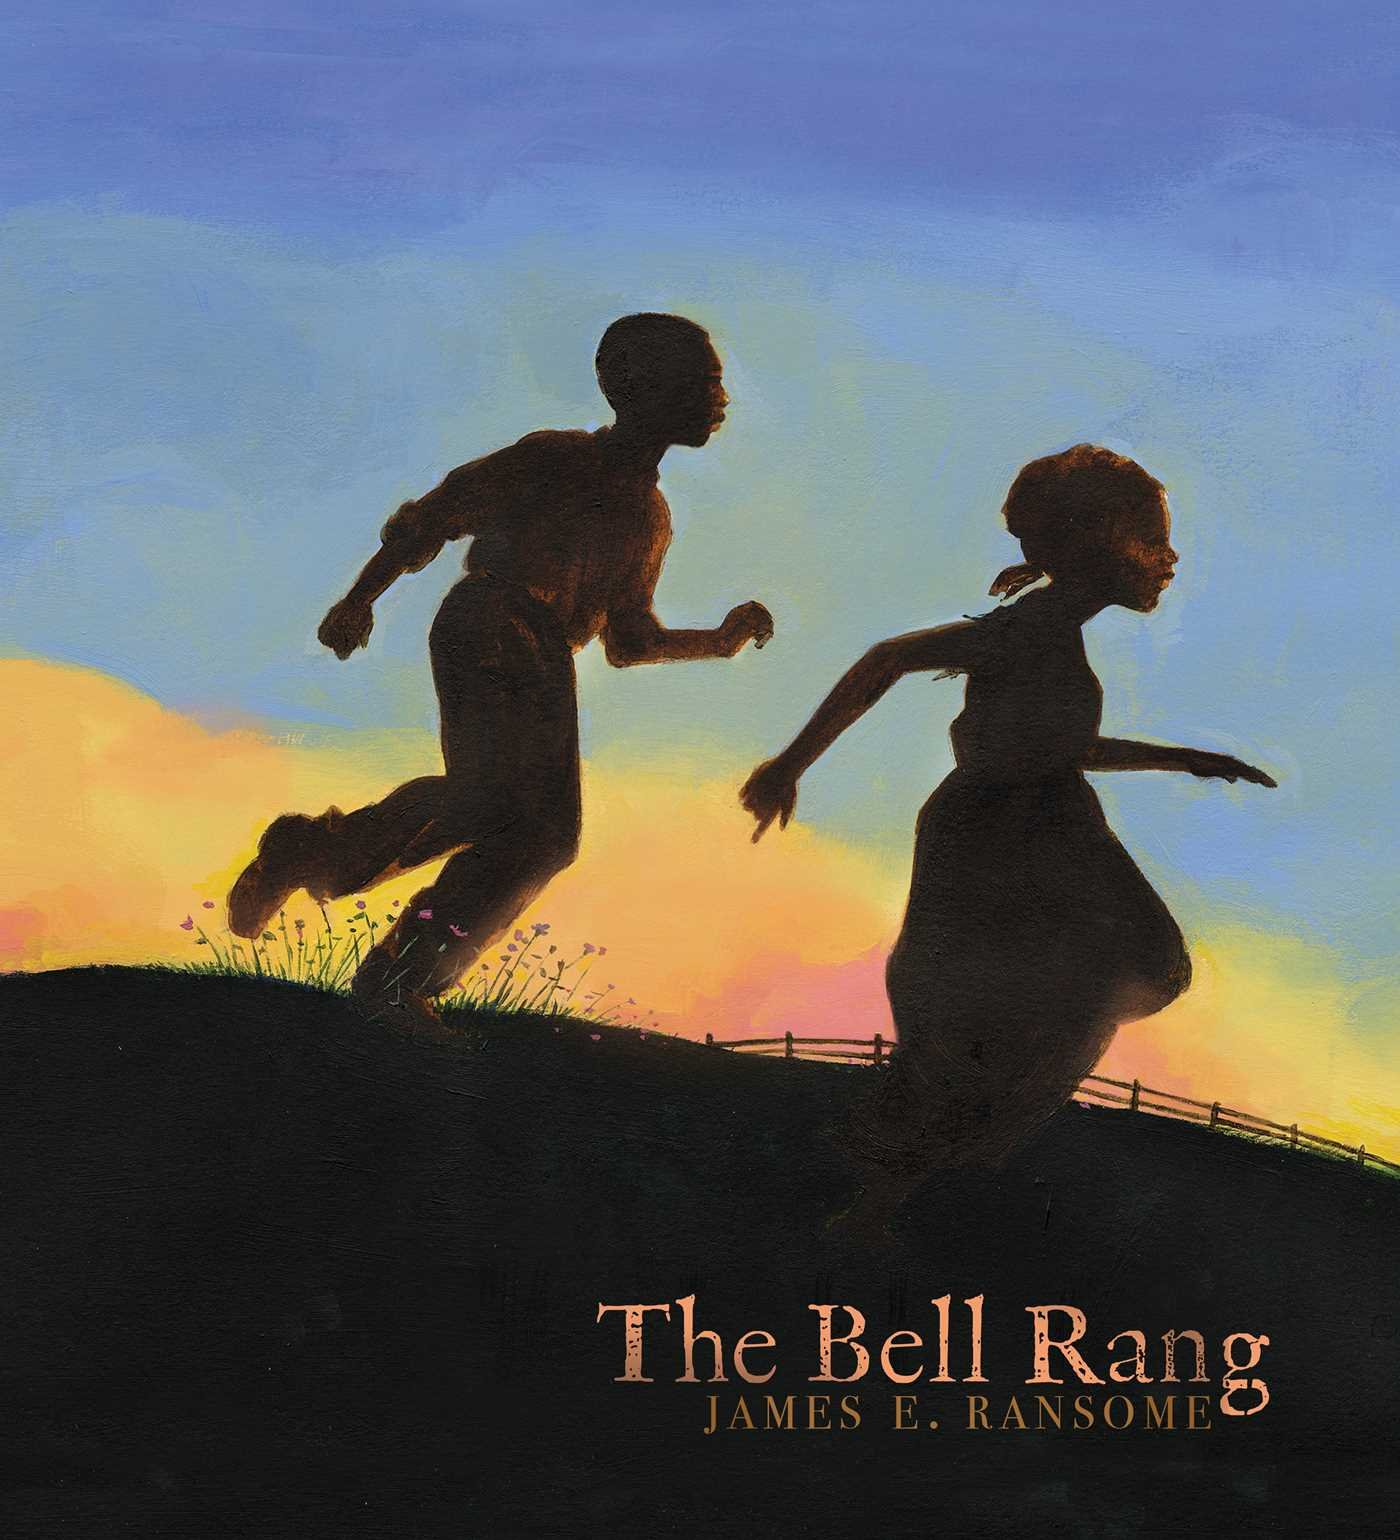 Image result for bell rang ransome amazon